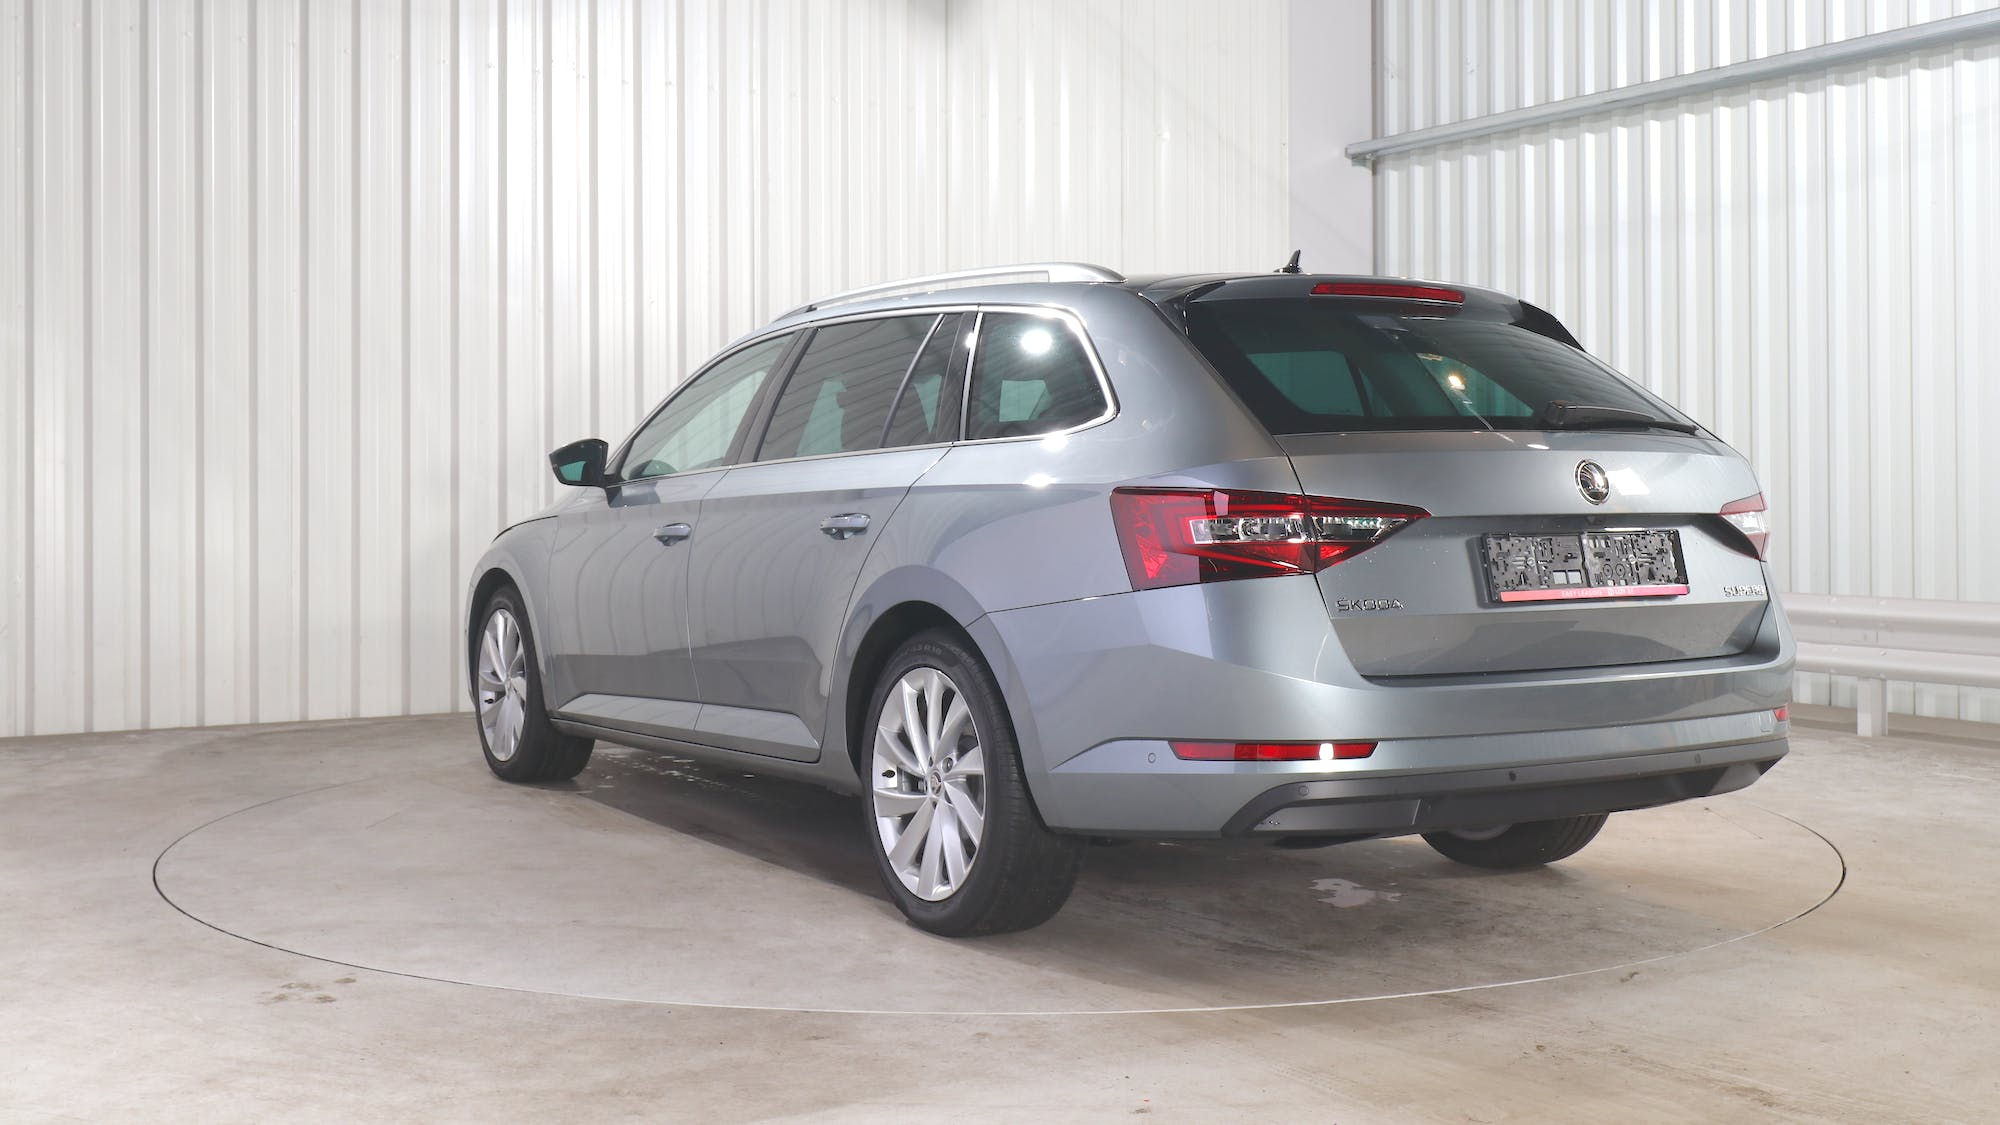 SKODA SUPERB COMBI leasing exterior 4